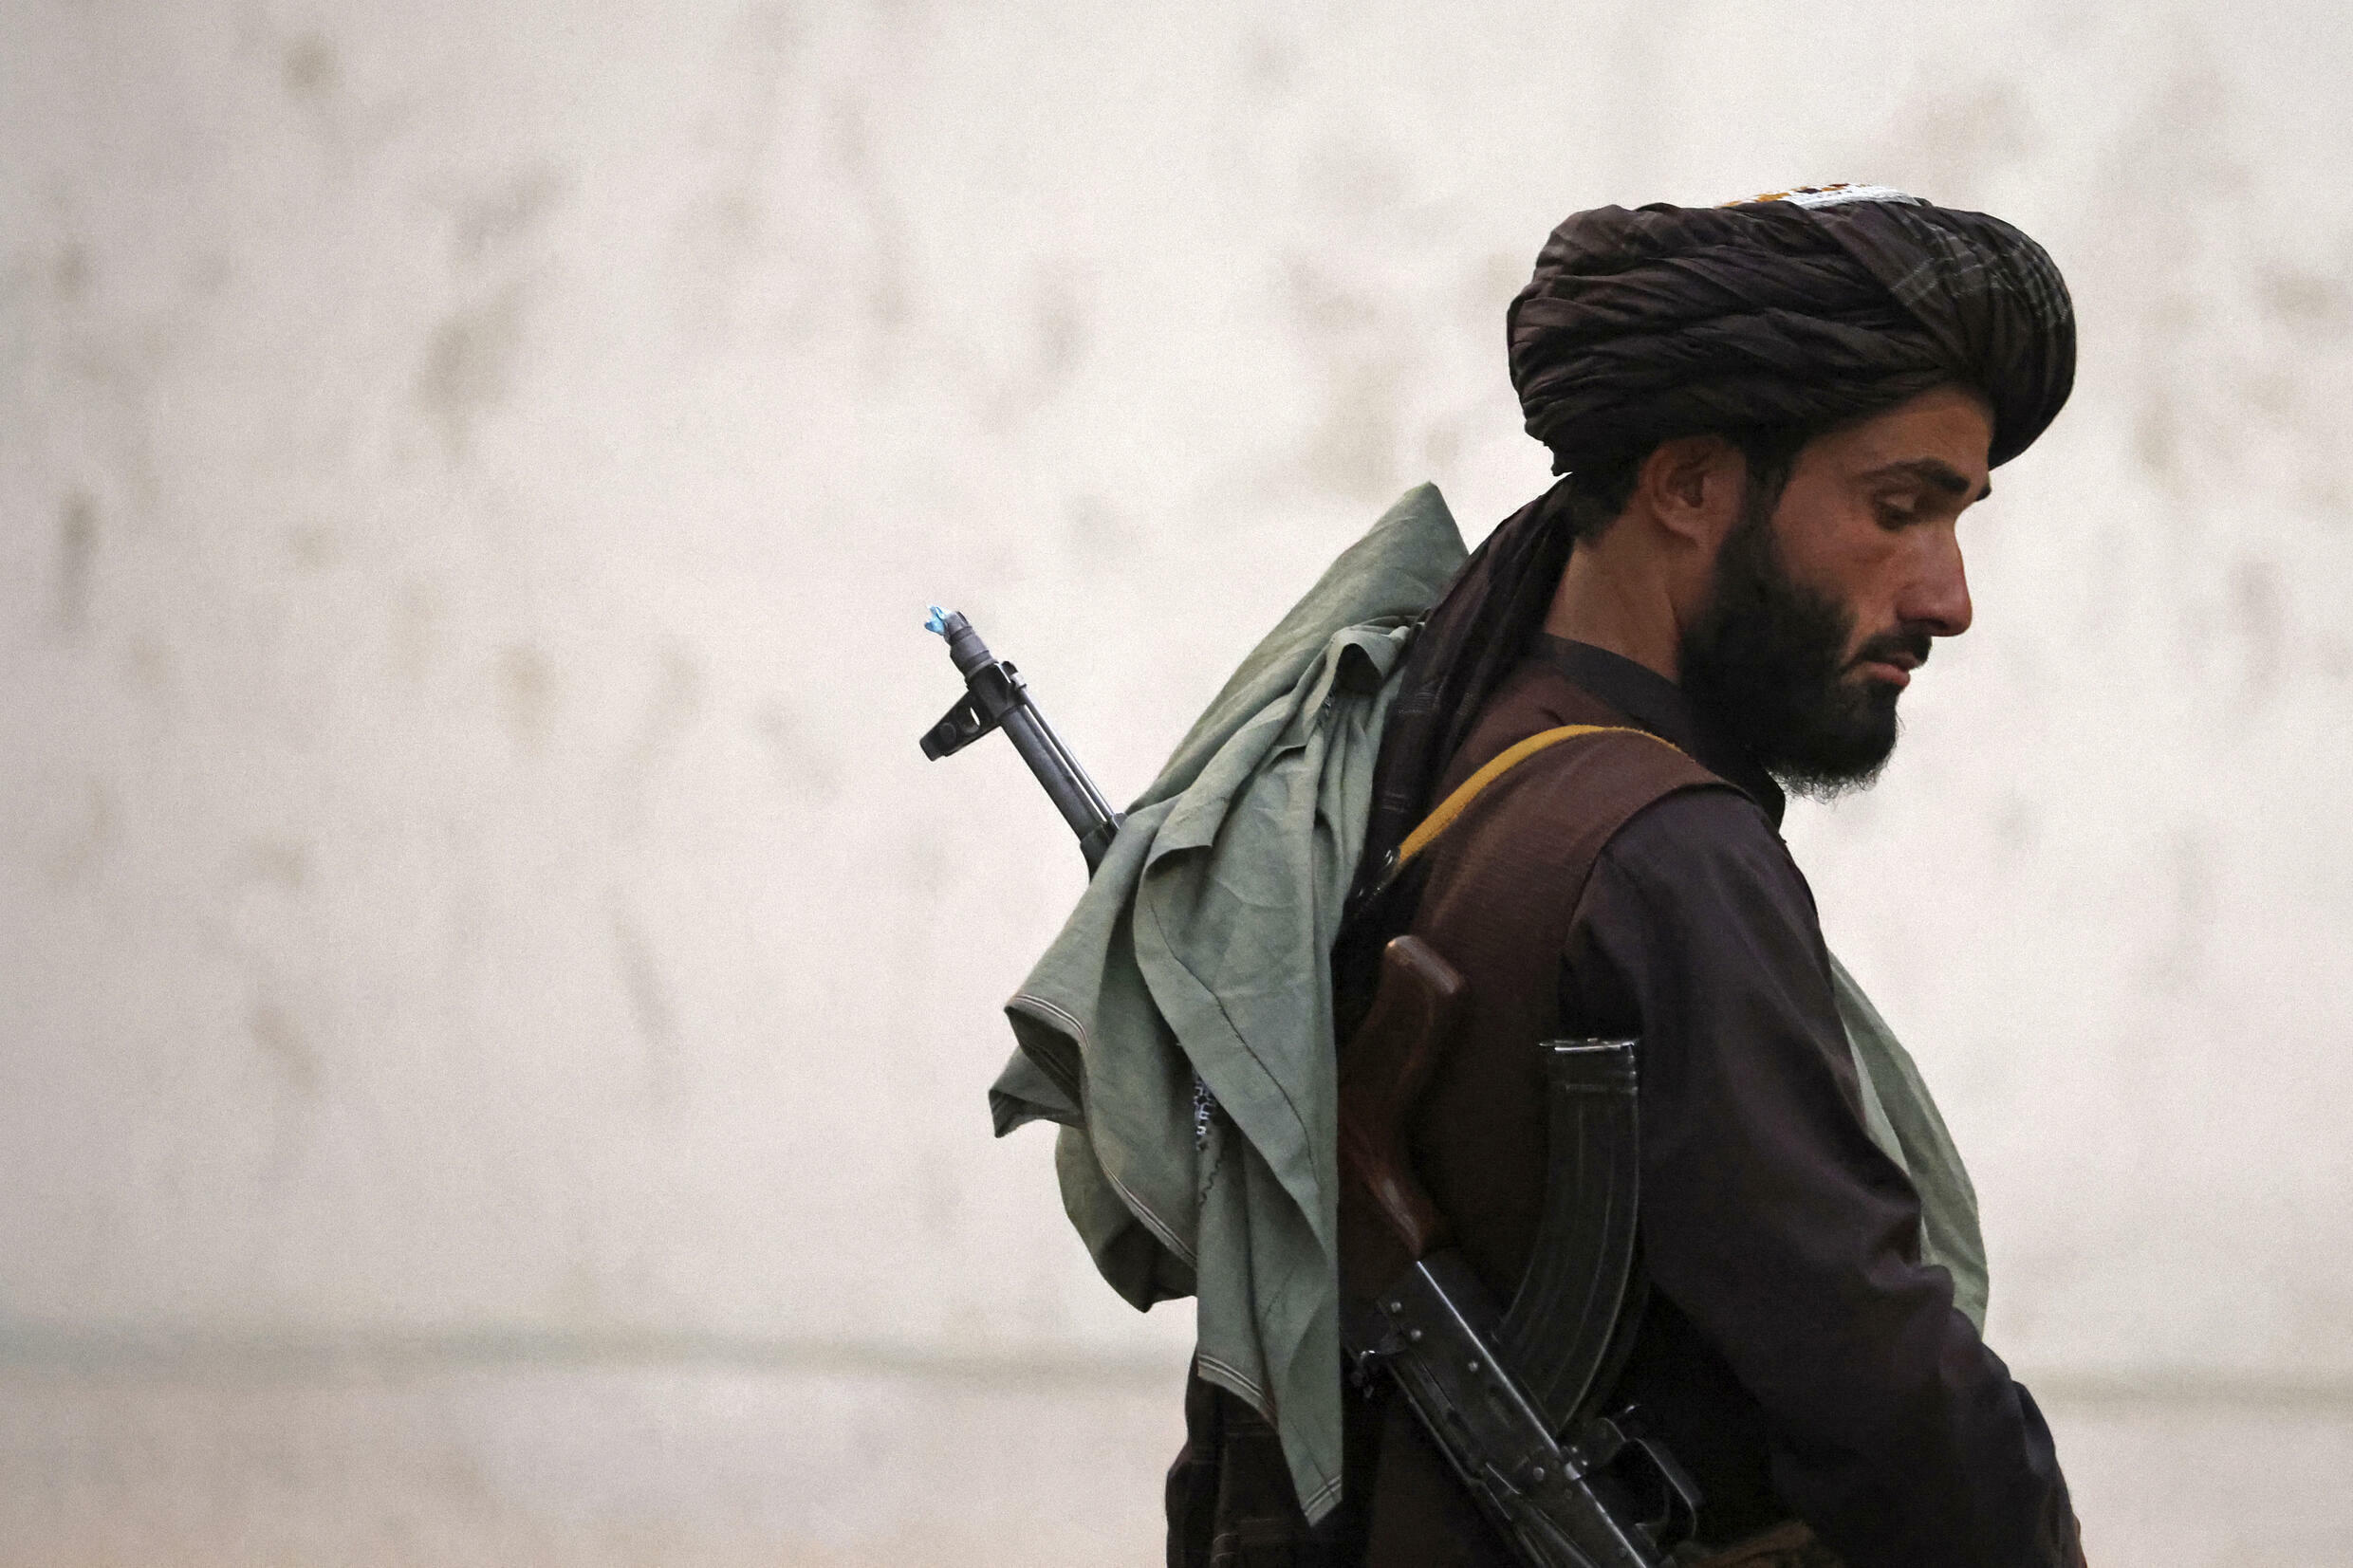 Women's rights in Afghanistan were sharply curtailed under the Taliban's 1996-2001 rule, but since returning to power the group claims they will be less extreme